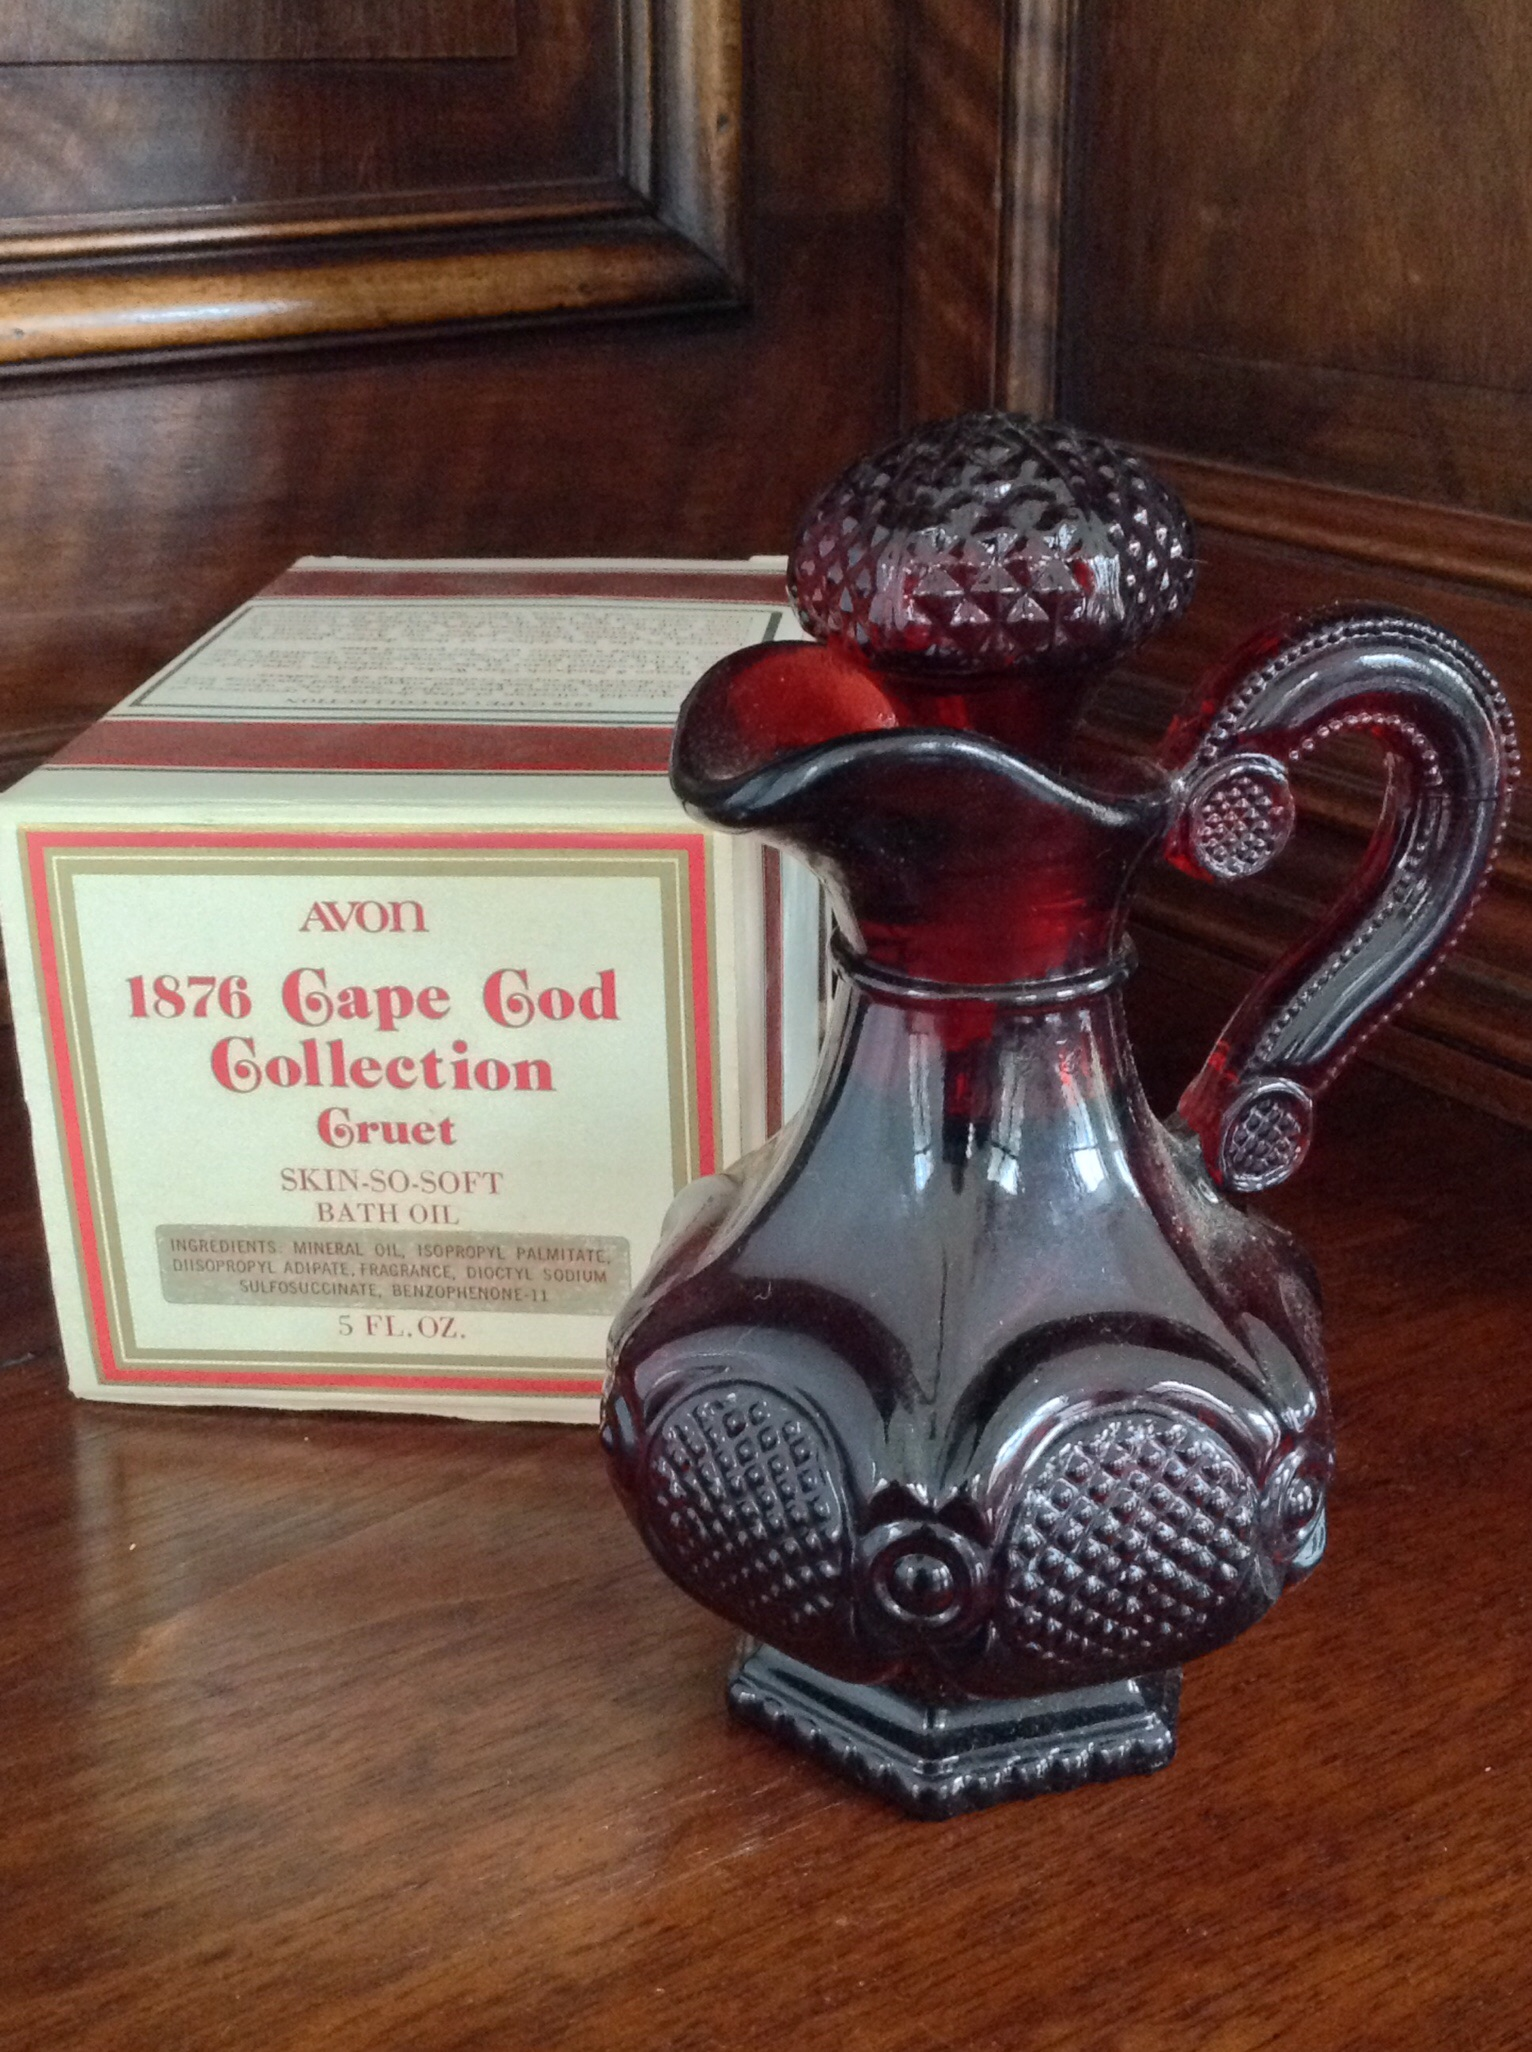 Avon 1876 Cape Cod Collection Cruet